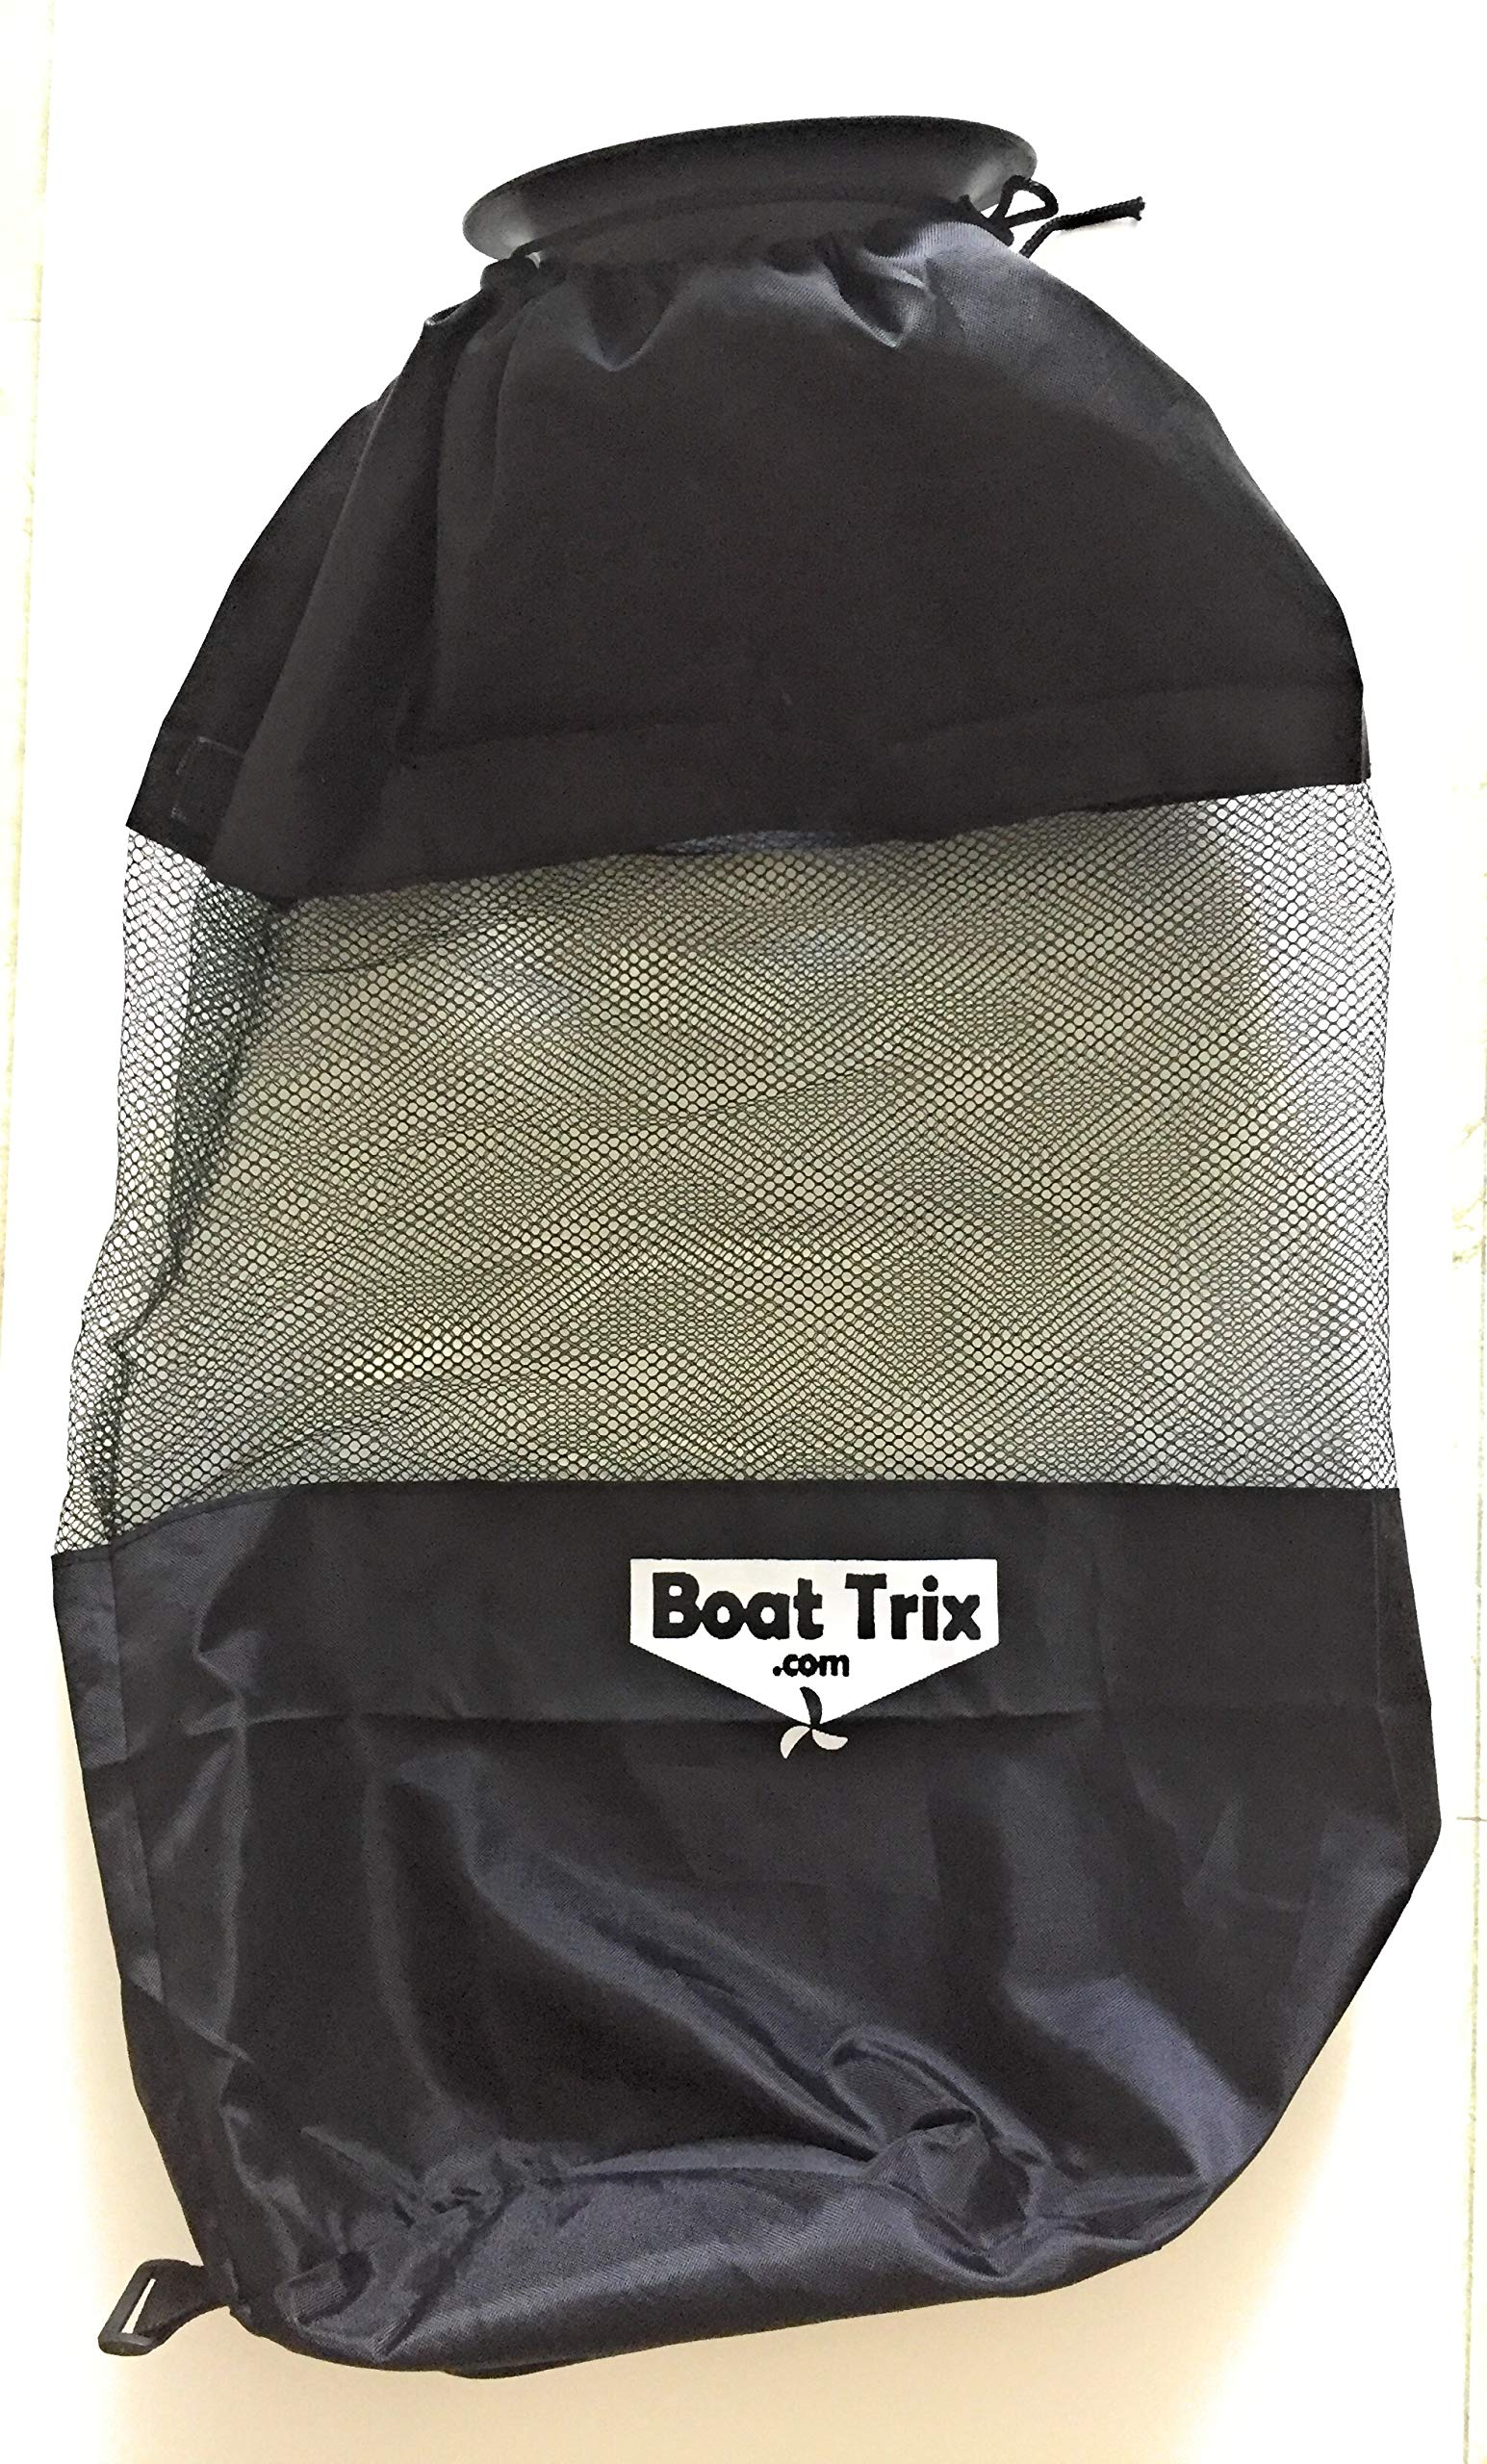 Boat Trash Bag - Large Hoop Mesh Trash Bag for Your Boat by Boat Trix